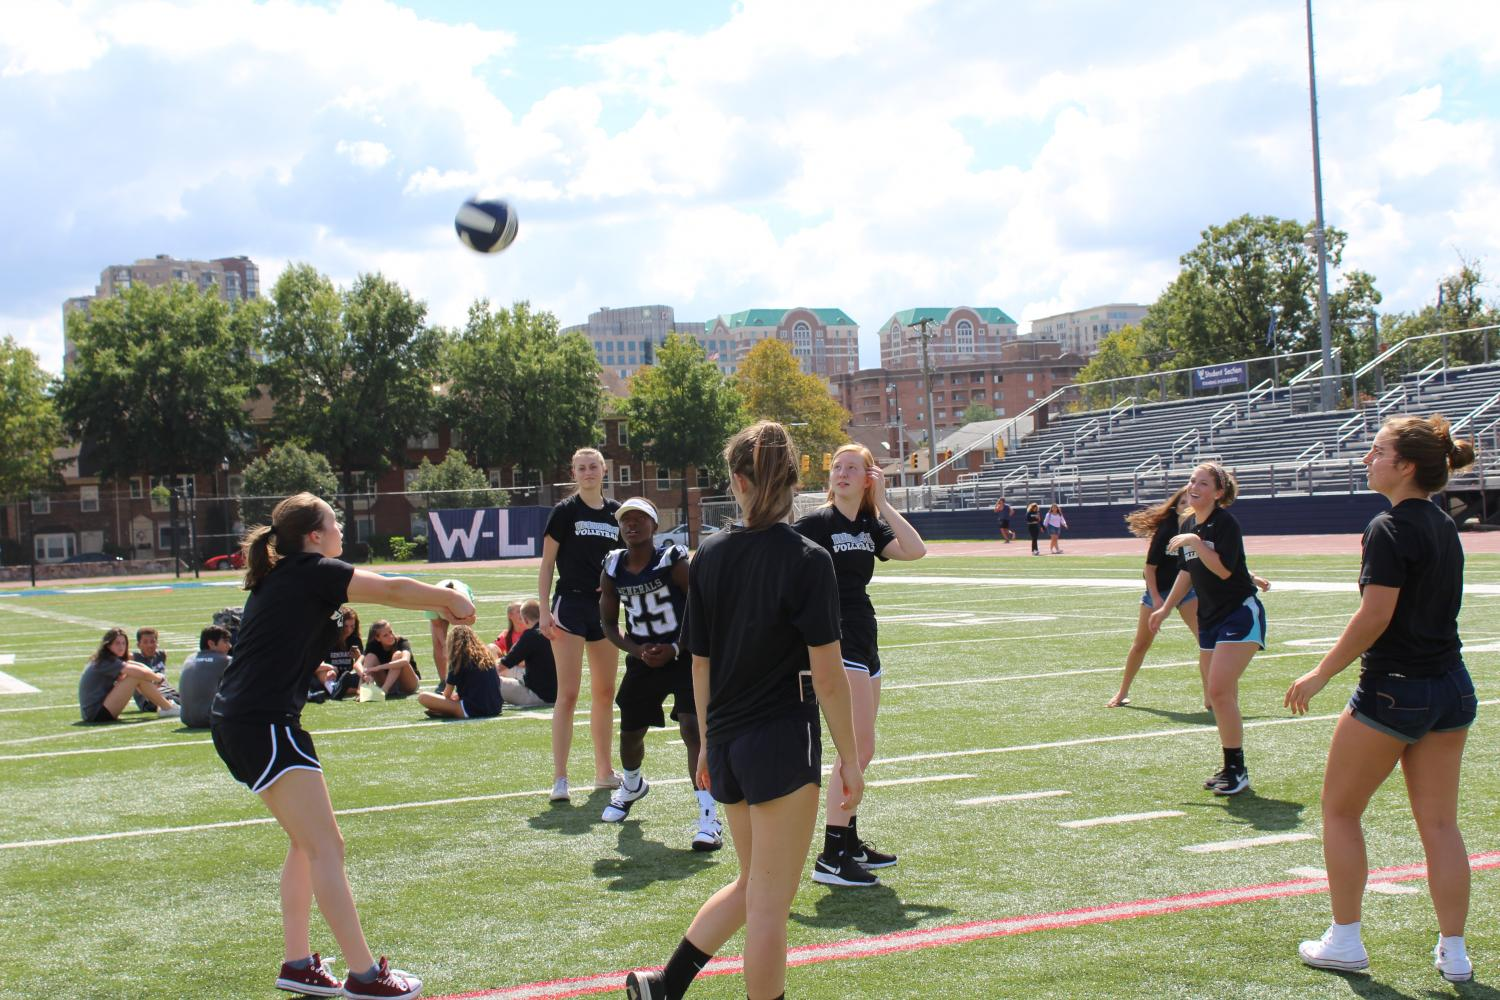 The varsity volleyball team gets the ball in the air to pump themselves for the pep rally